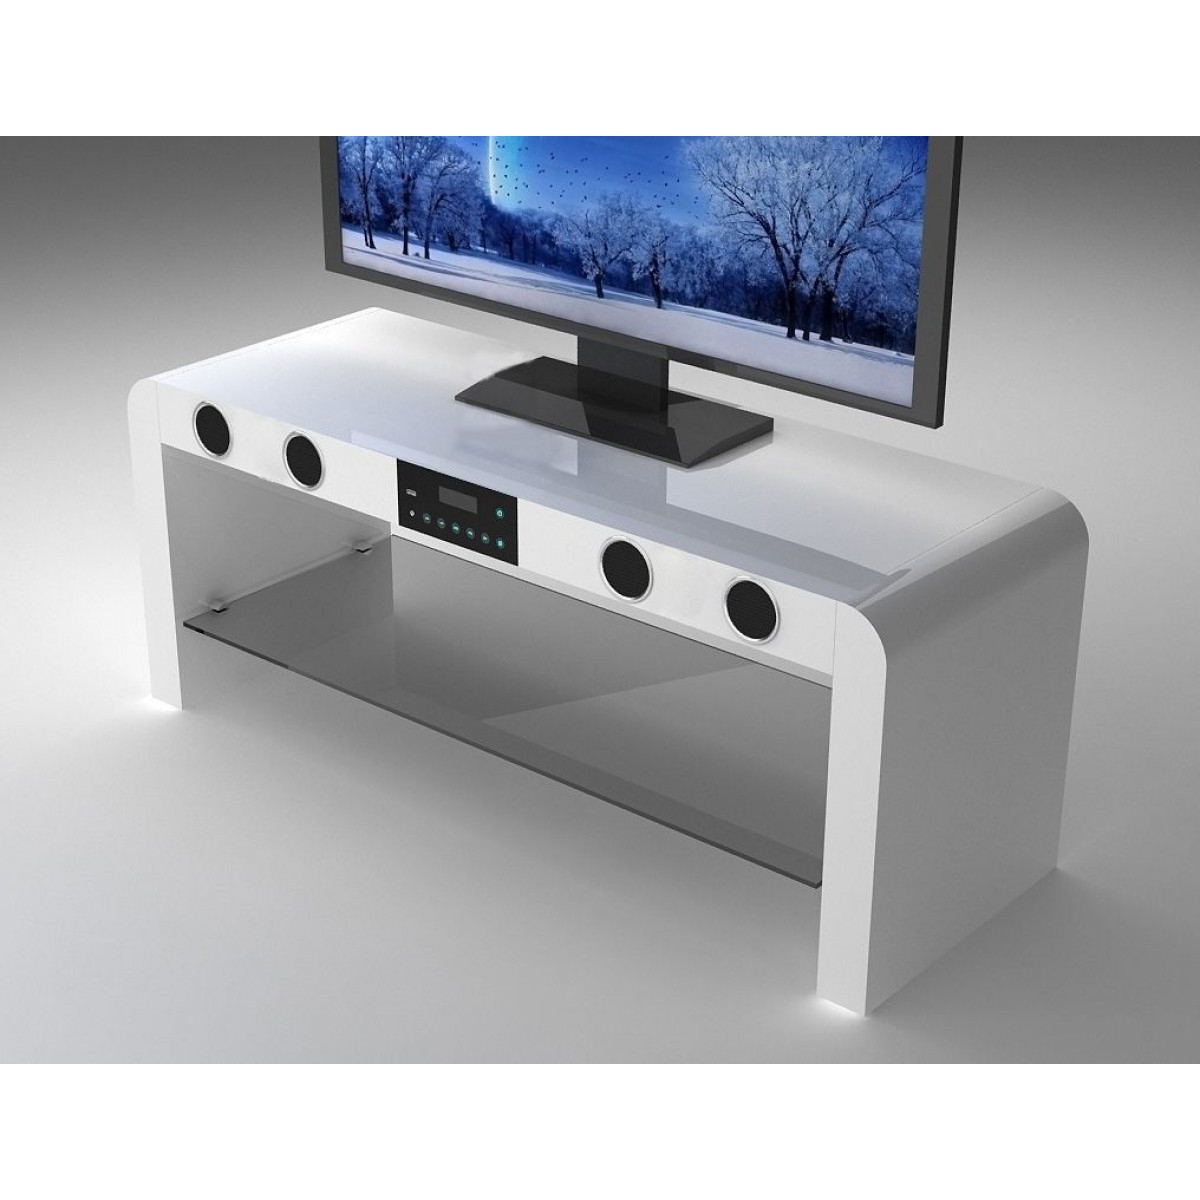 High Gloss Tv Benches Intended For Latest Modern White High Gloss Tv Stand With Speakers – Home Done (View 11 of 20)